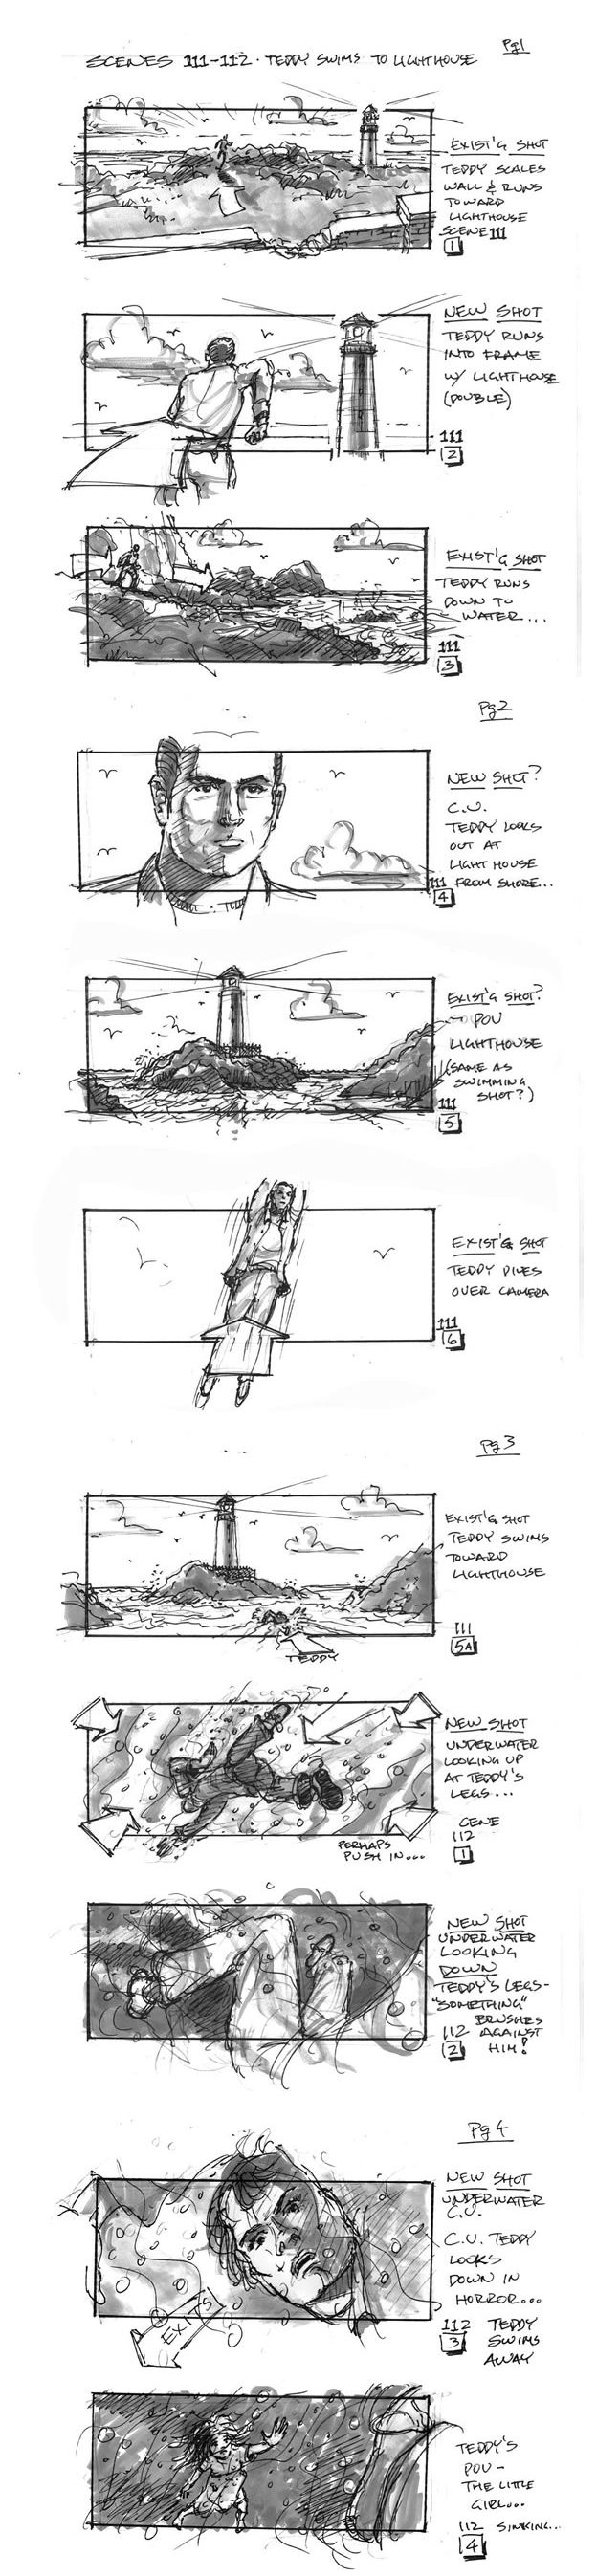 "famous movie storyboards ""Nice, efficient and dramatic"" KB                                                                                                                                                                                 More"